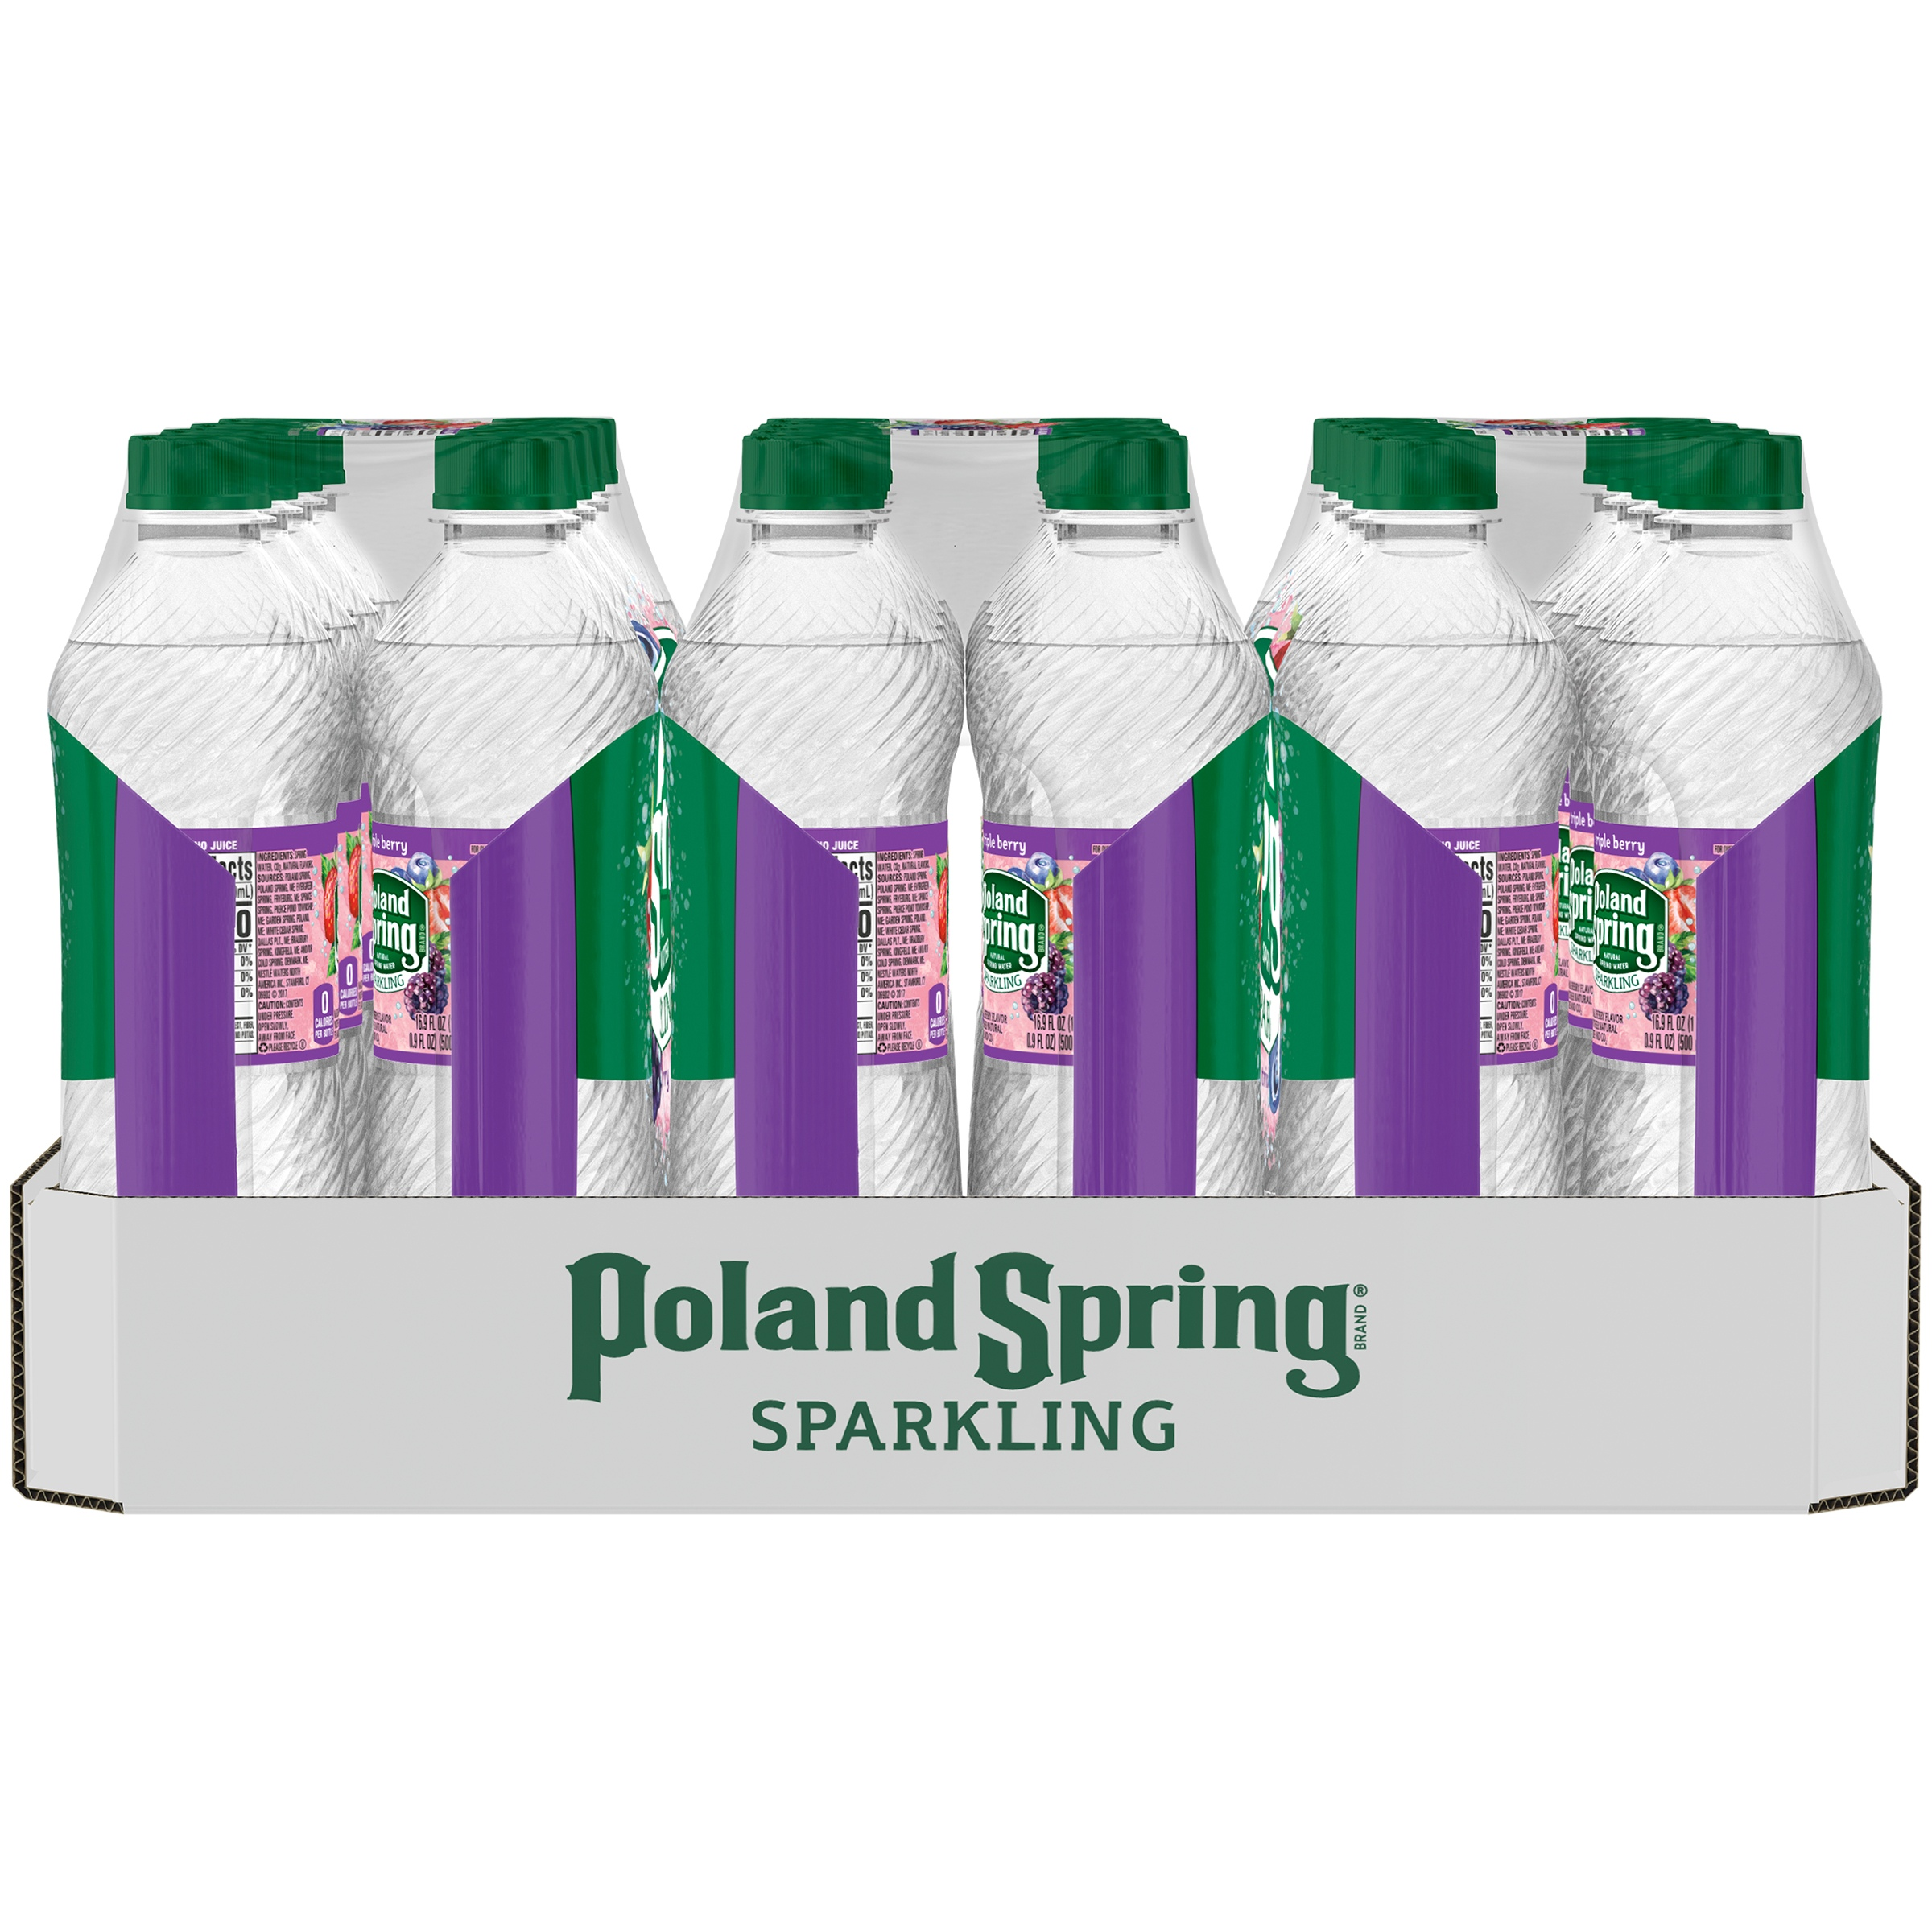 POLAND SPRING Sparkling Triple Berry Natural Spring Water 24 ct Pack